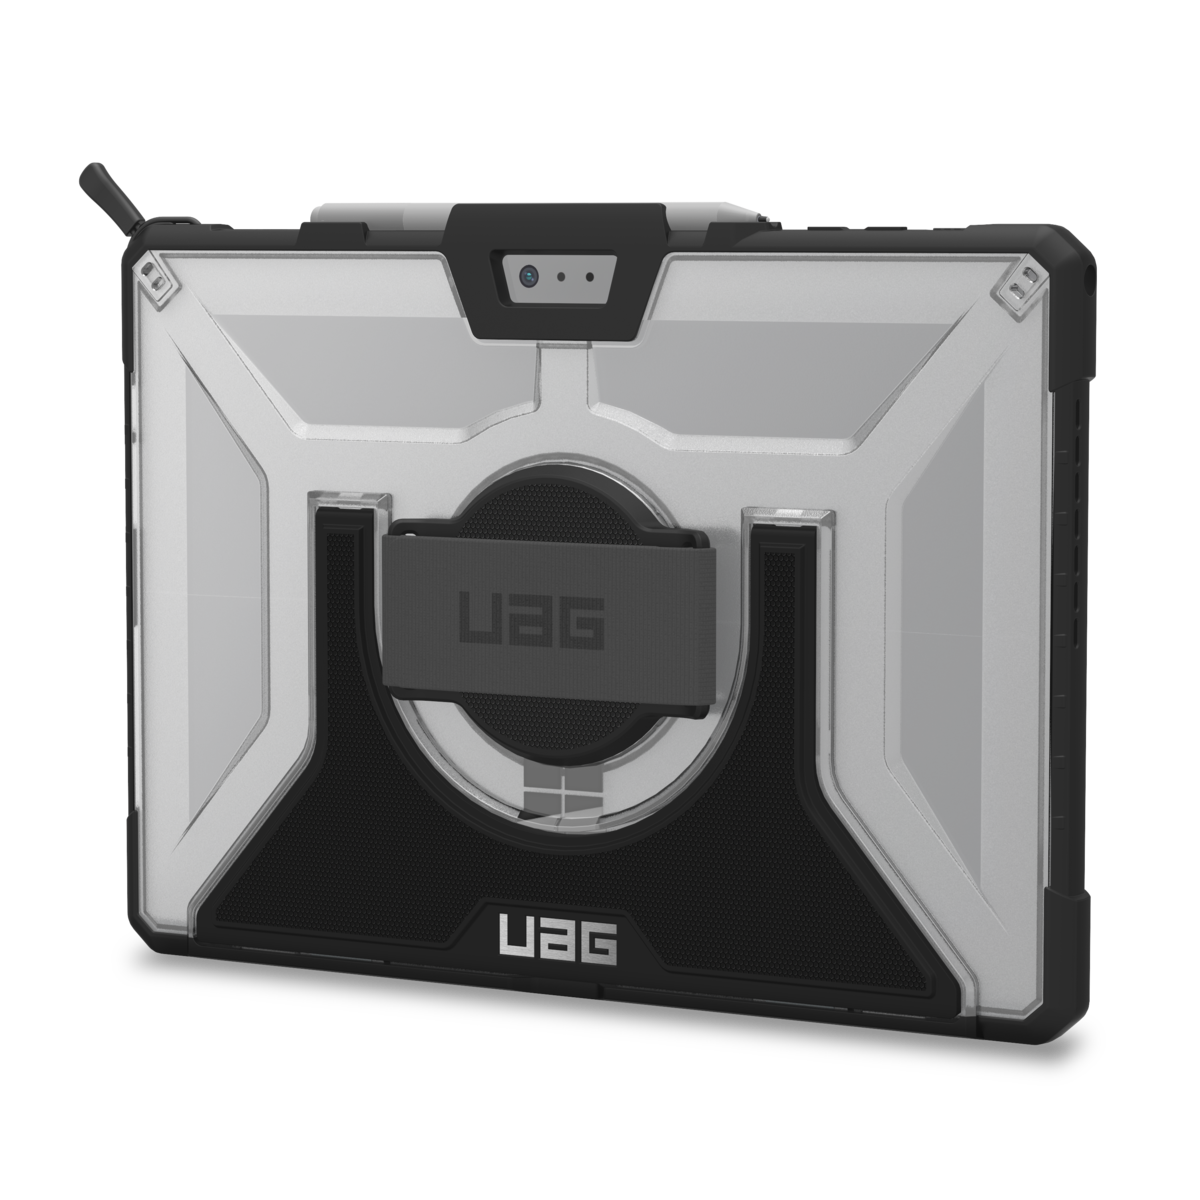 UAG CASE FOR MICROSOFT SURFACE PRO (2017) SURFACE PRO 4 WITH HANDSTRAP SHOULDER STRAP